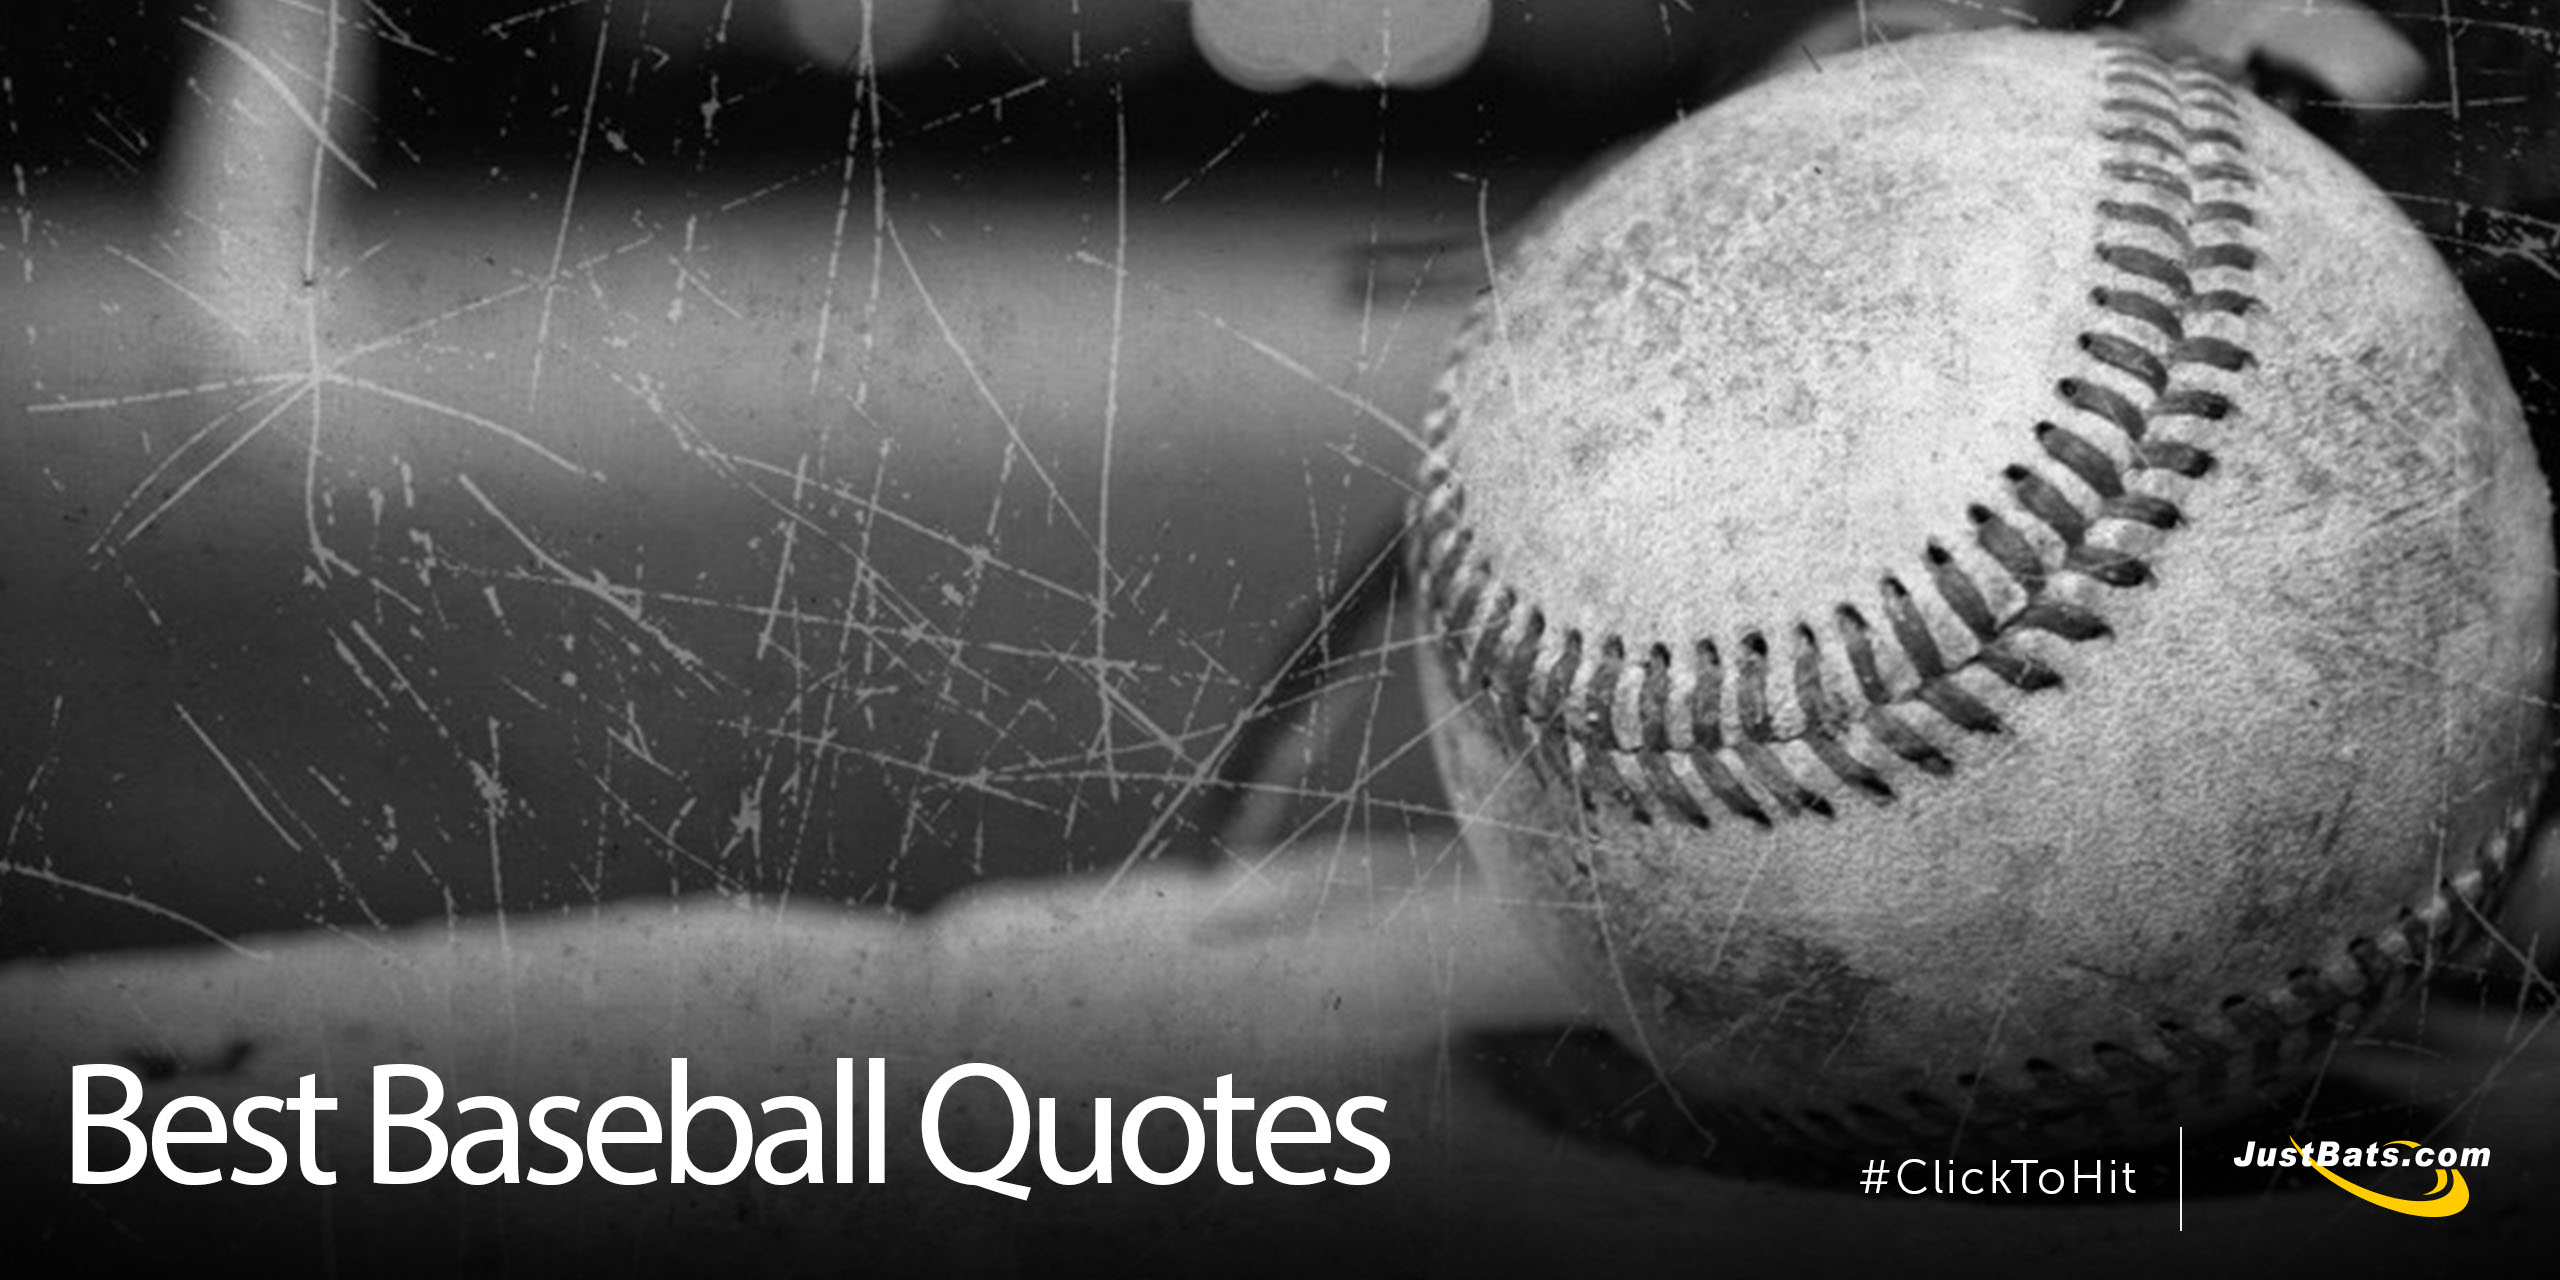 Best Baseball Quotes - Blog.jpg